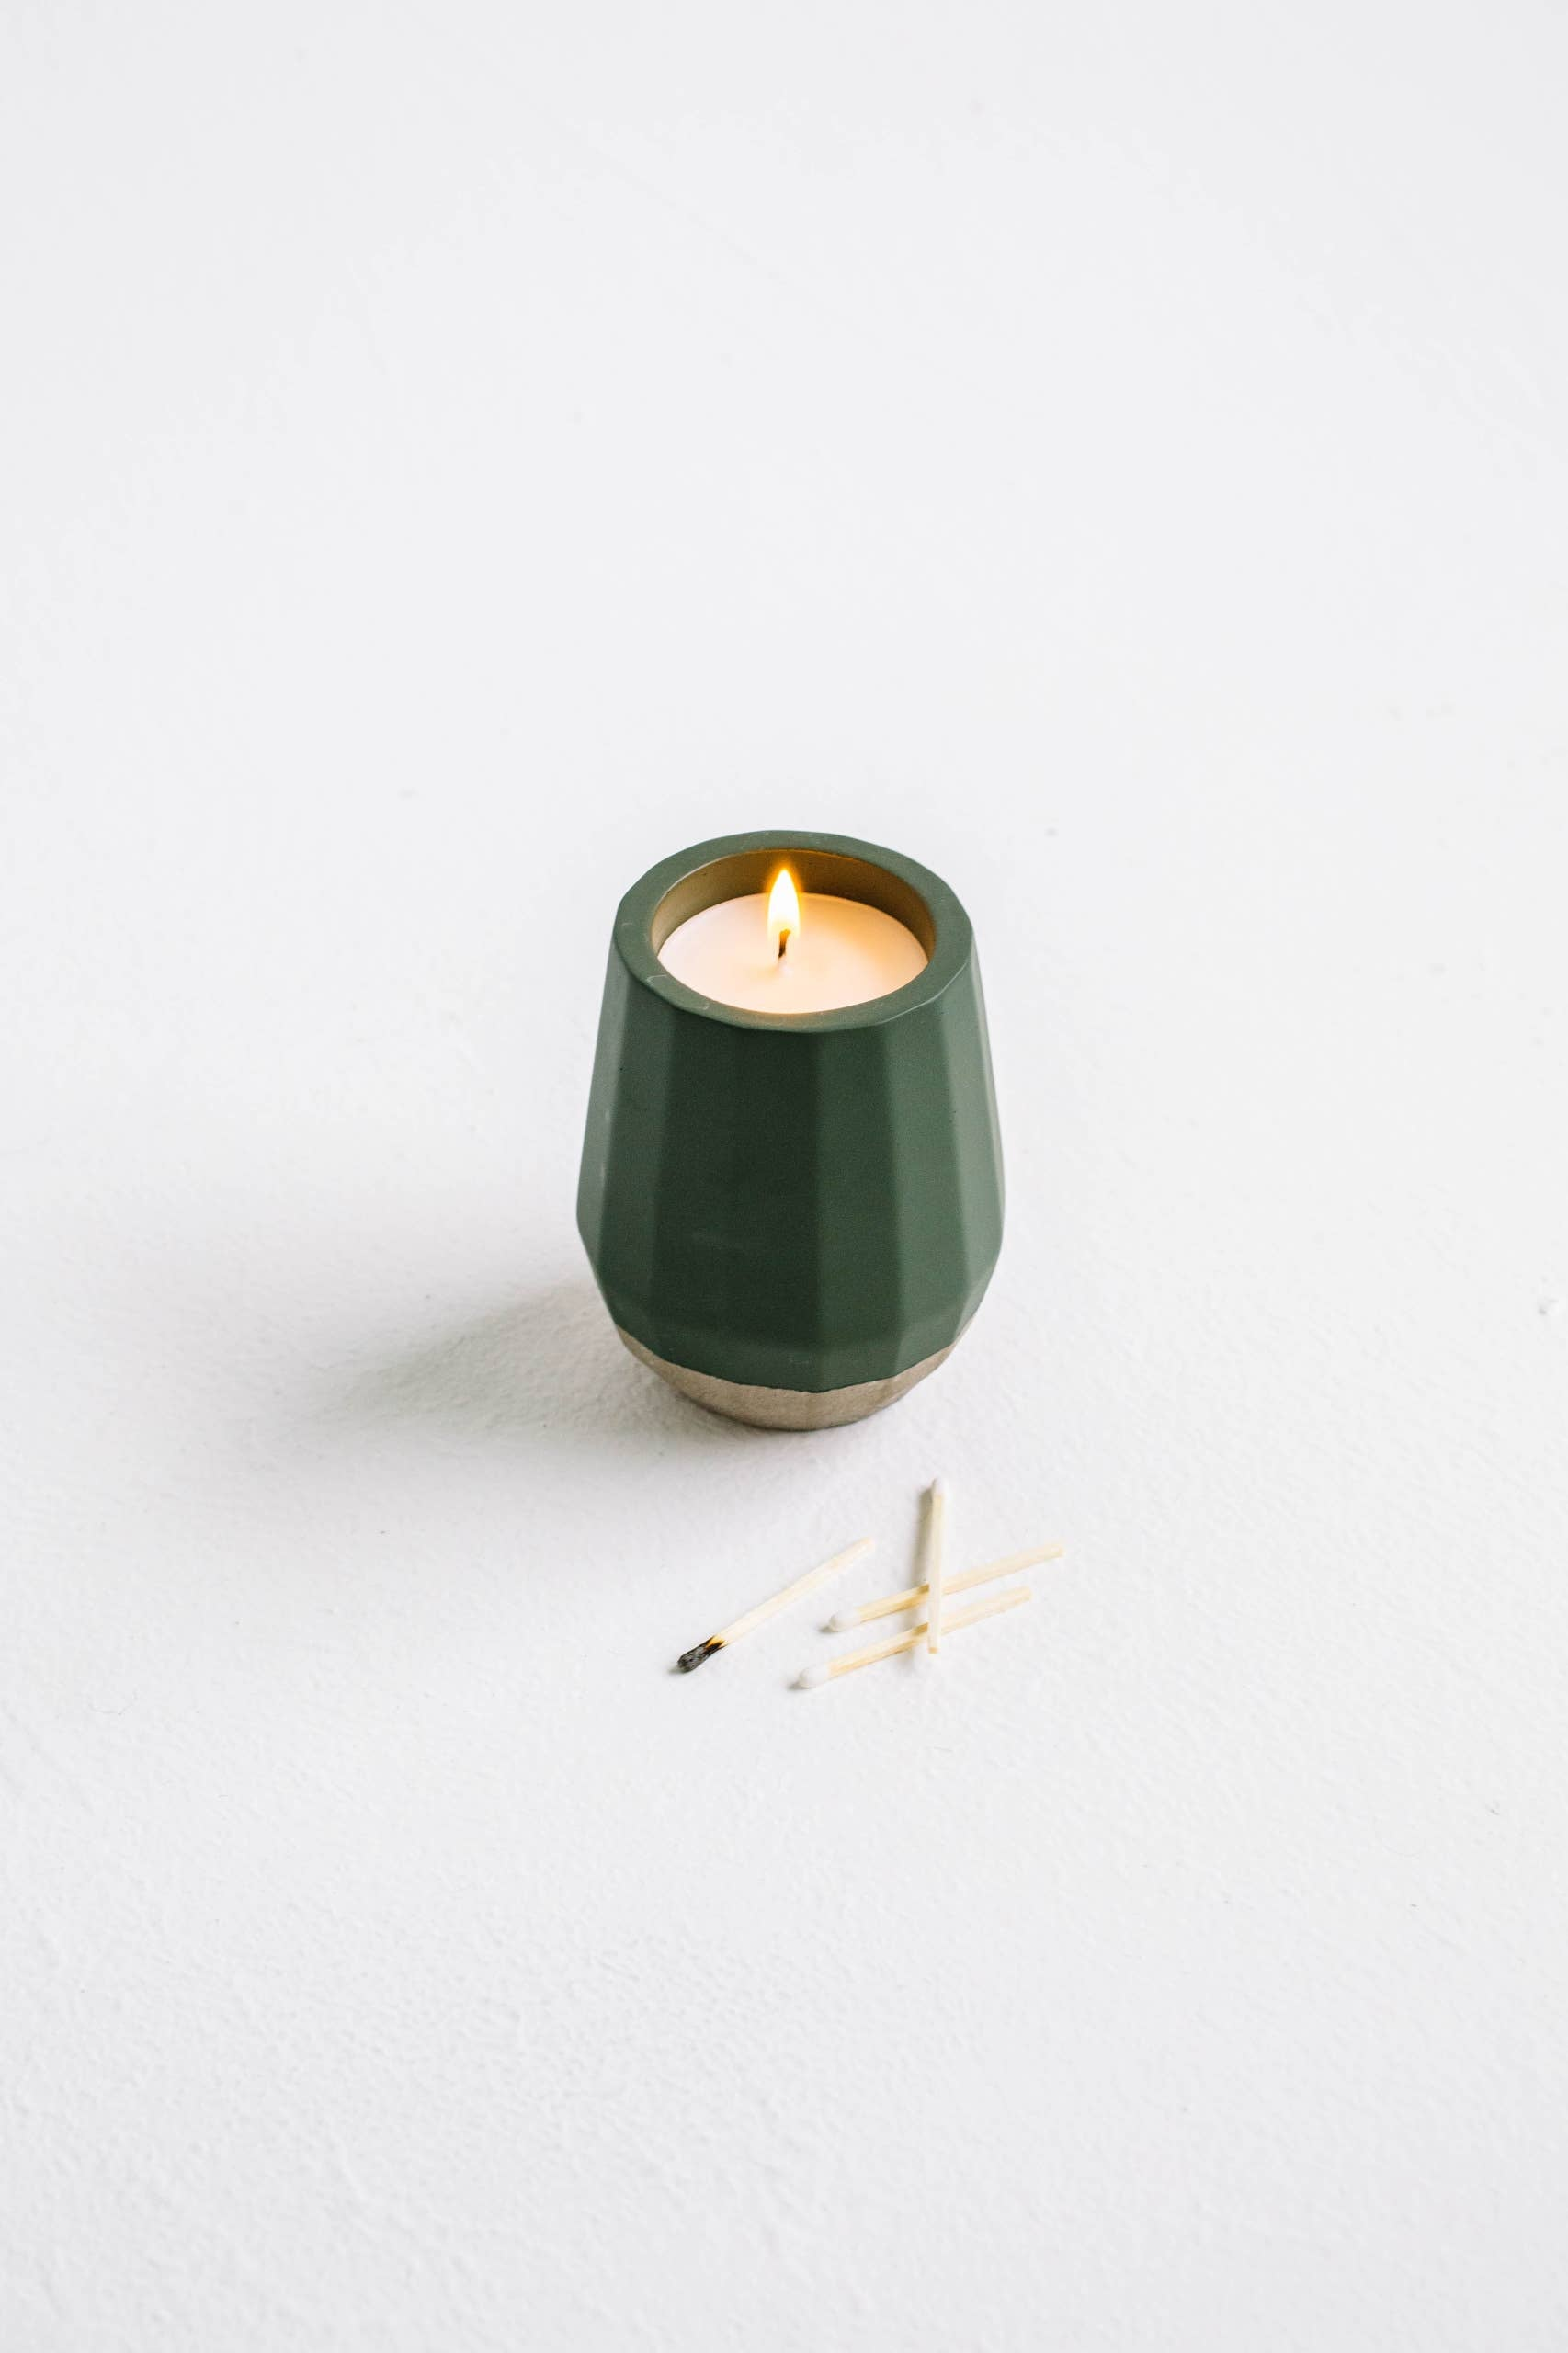 Urban Wick by Cait + Co - Douglas Fir + Fresh Pear Candle